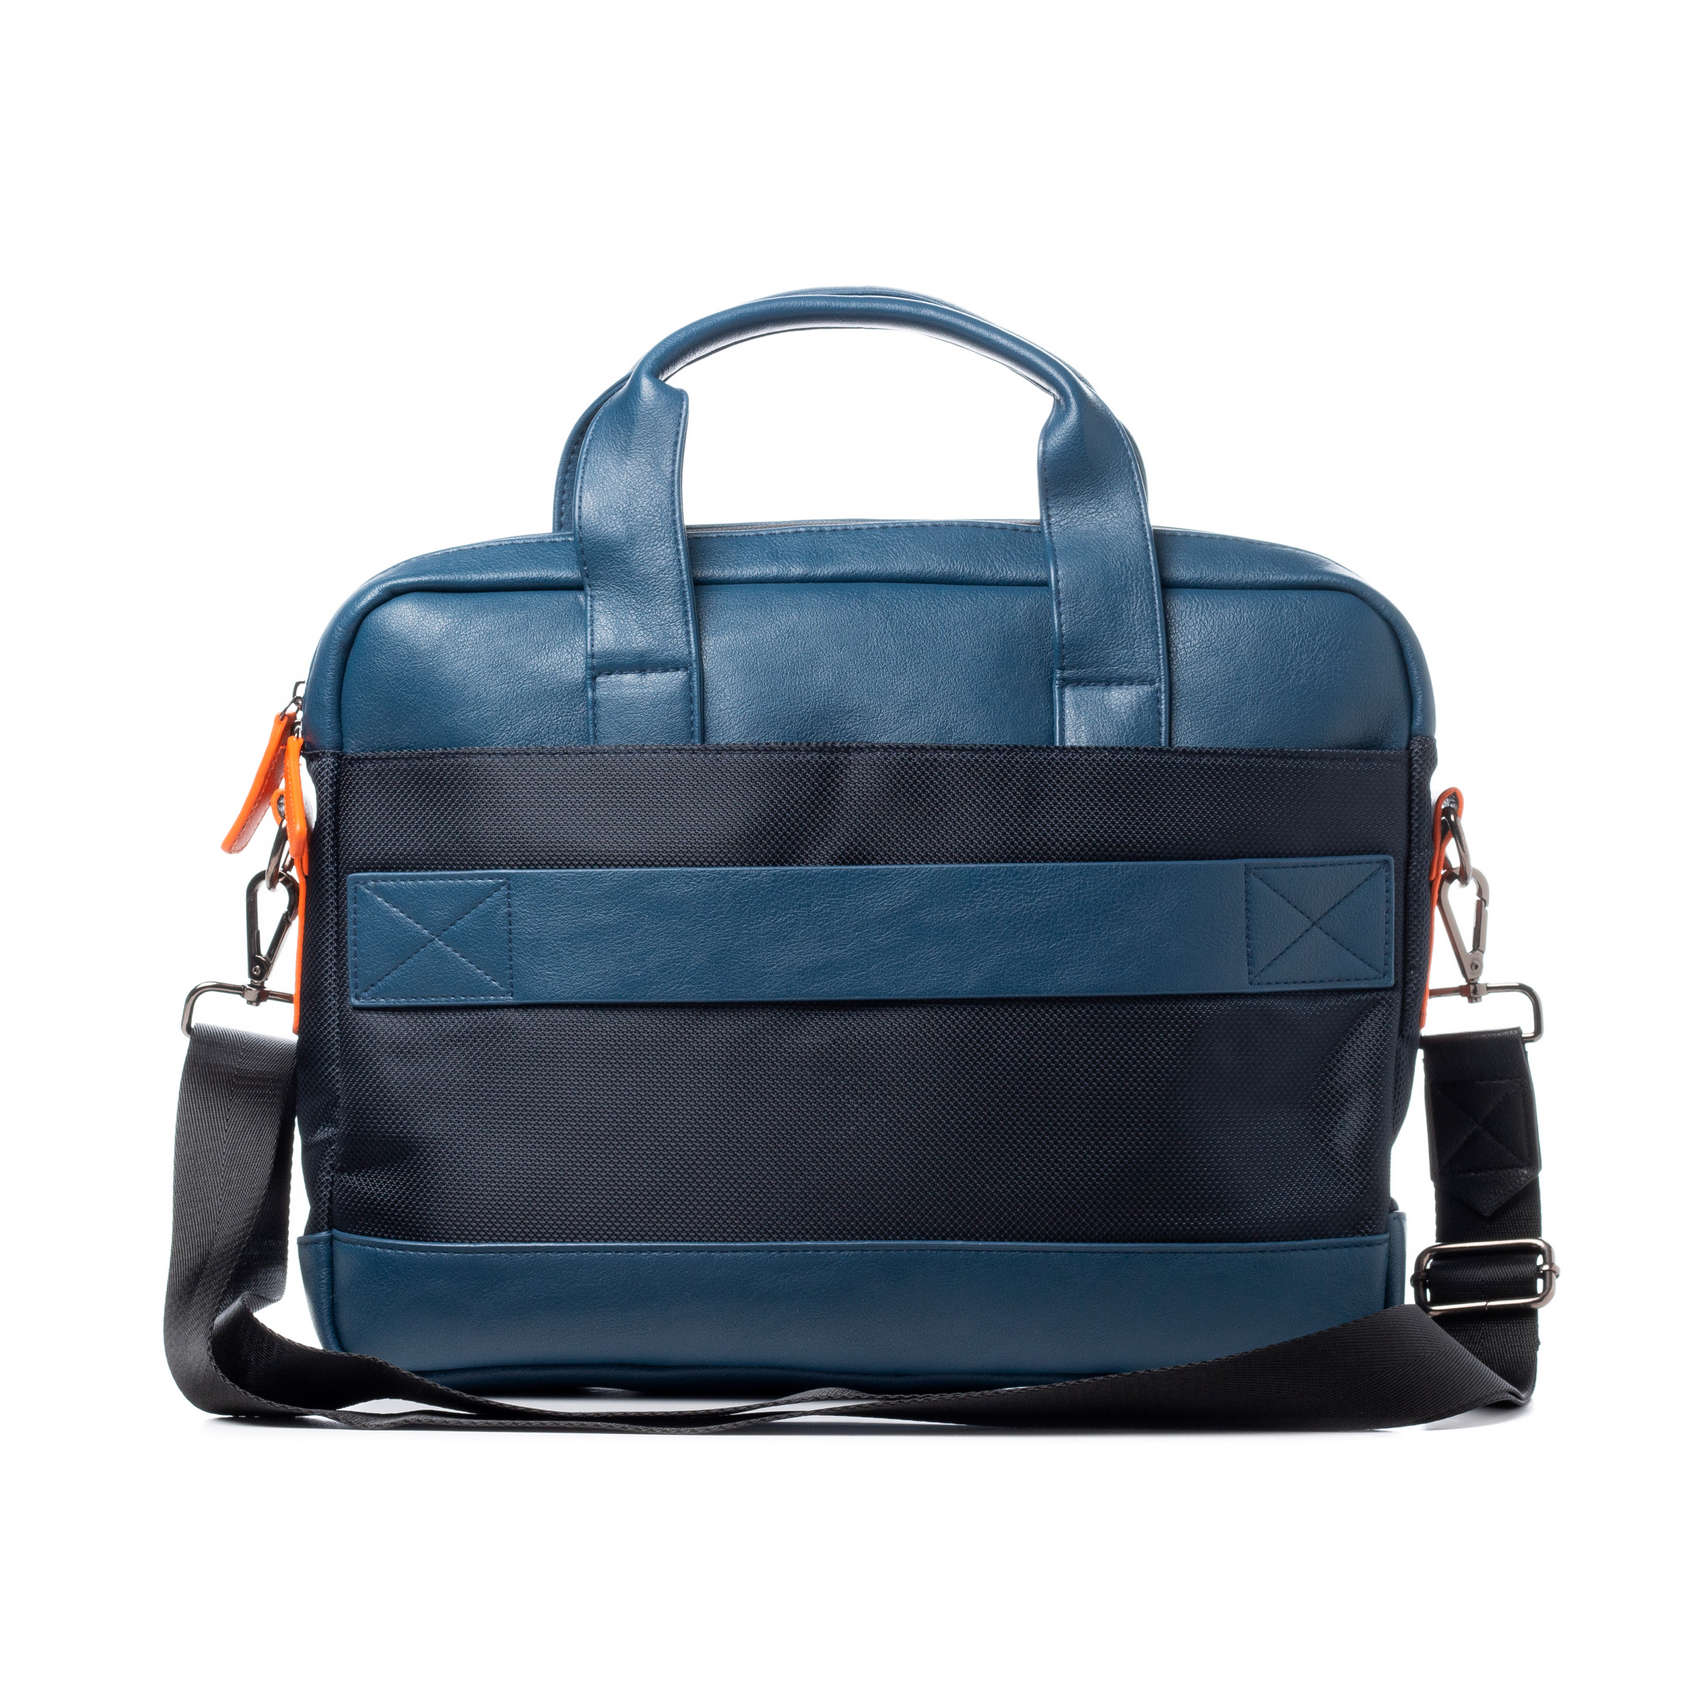 CITY MESSENGER NAVY